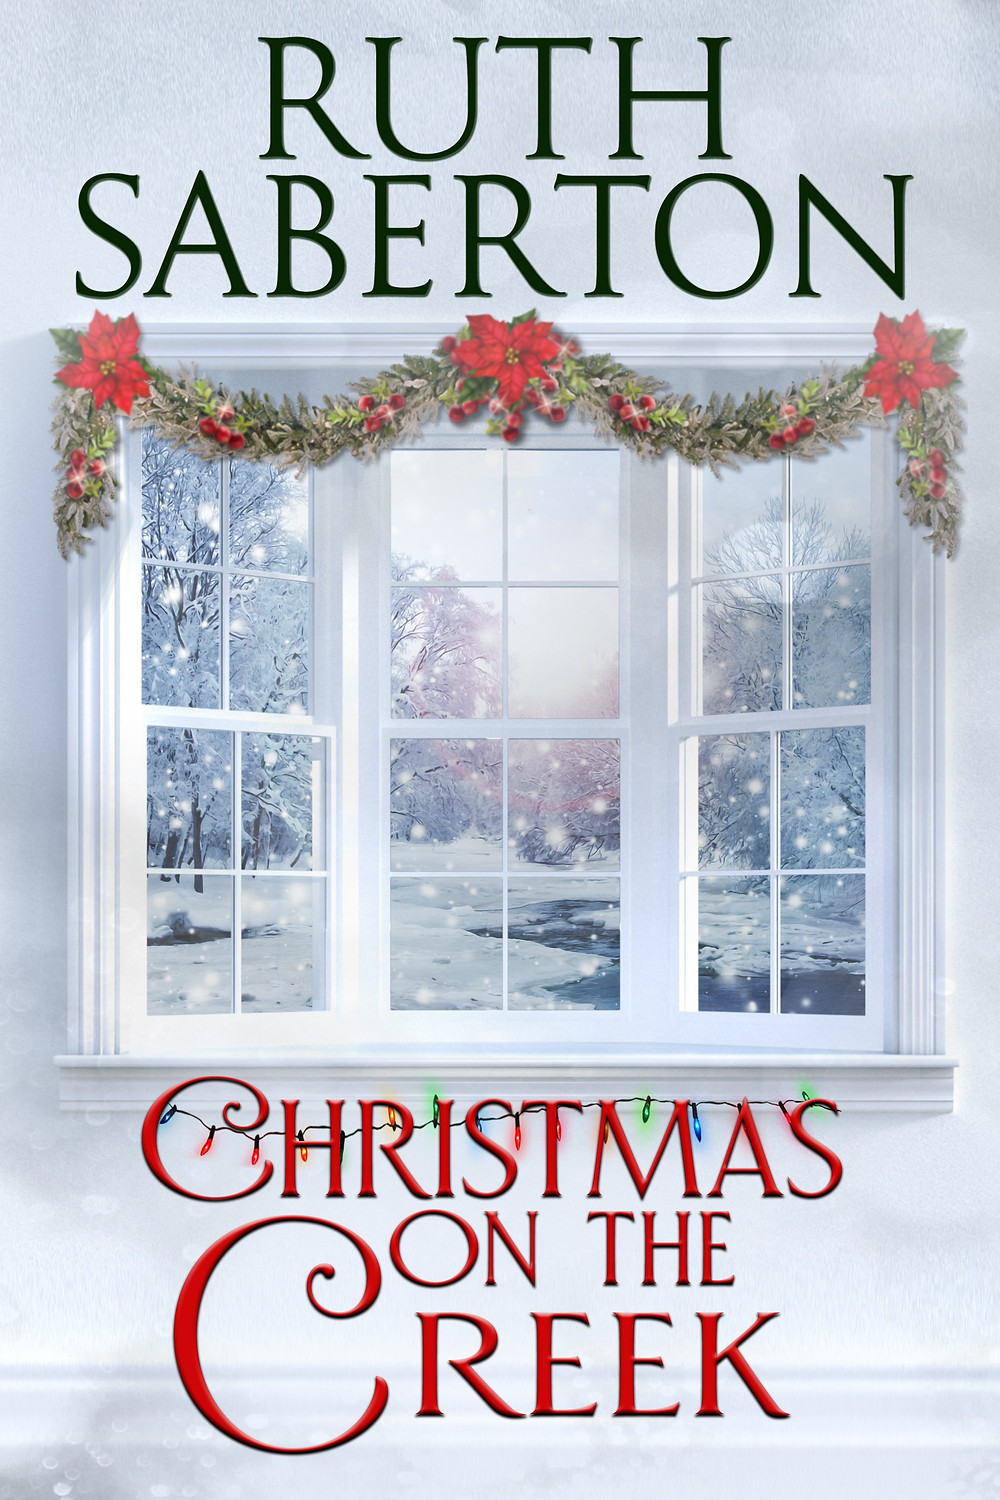 Ruth Saberton Christmas on the Creek